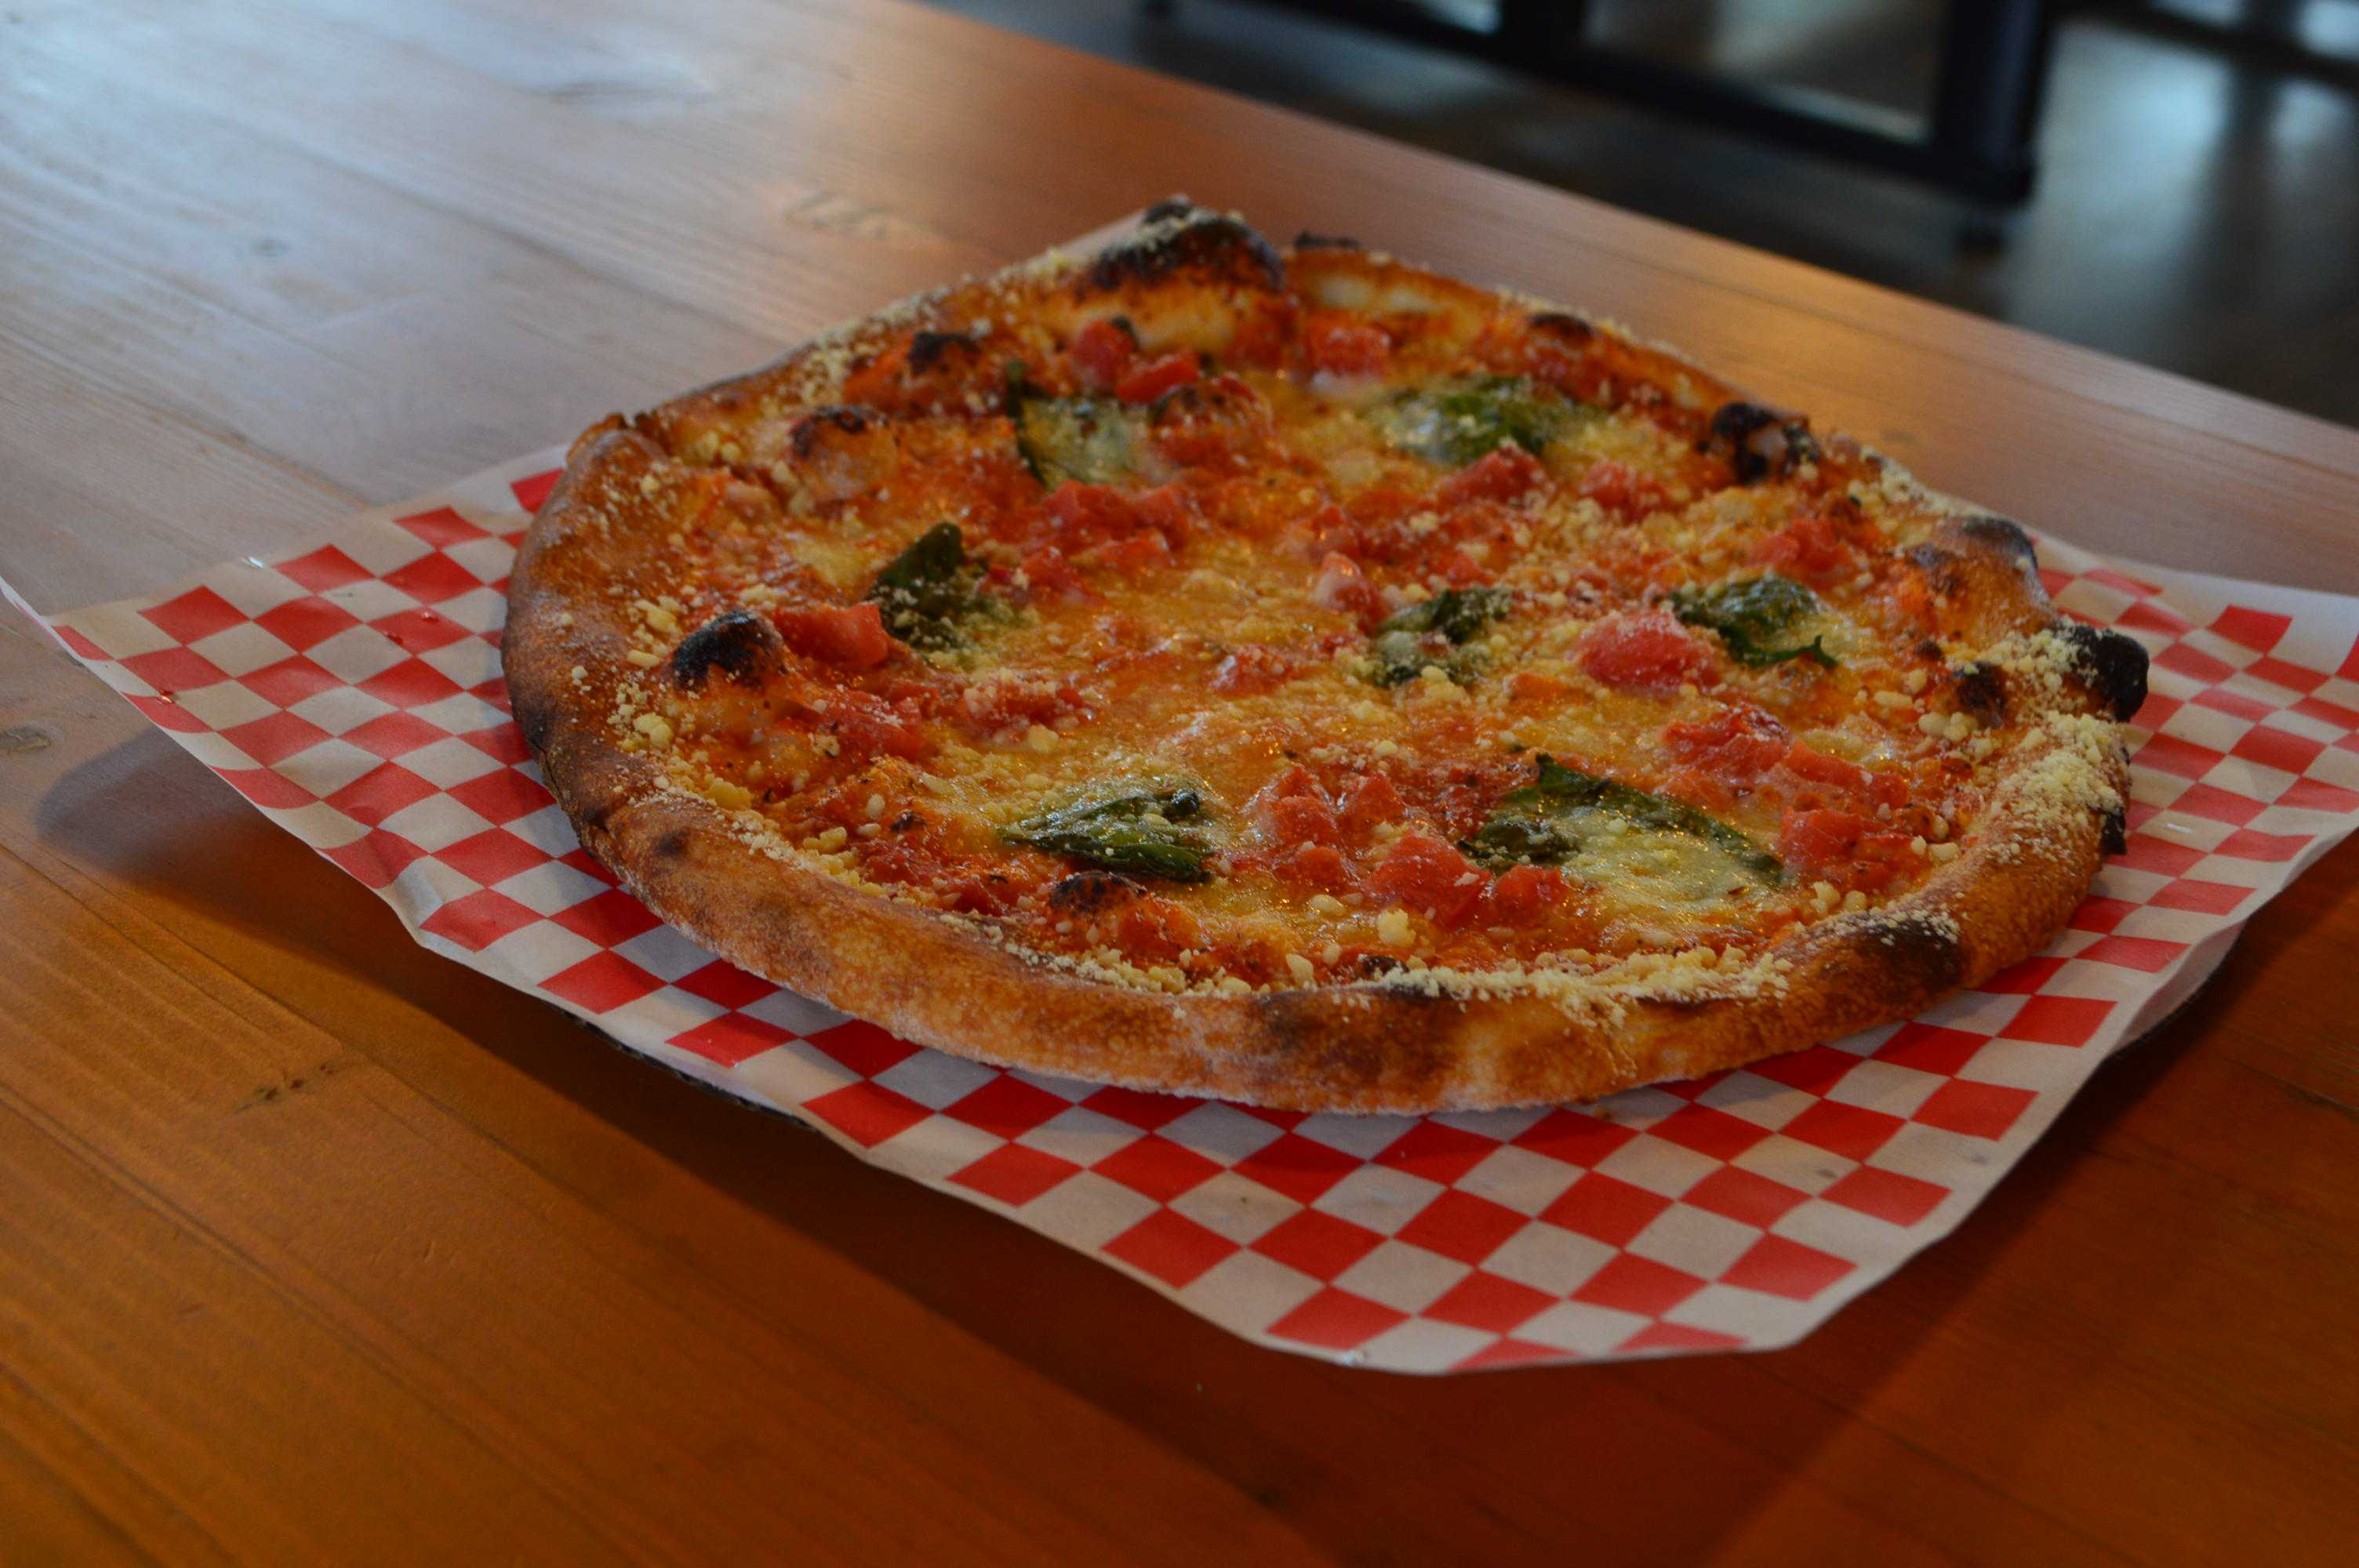 Margarita+pizza+from+the+Crust+Woodfire+Pizza+cart